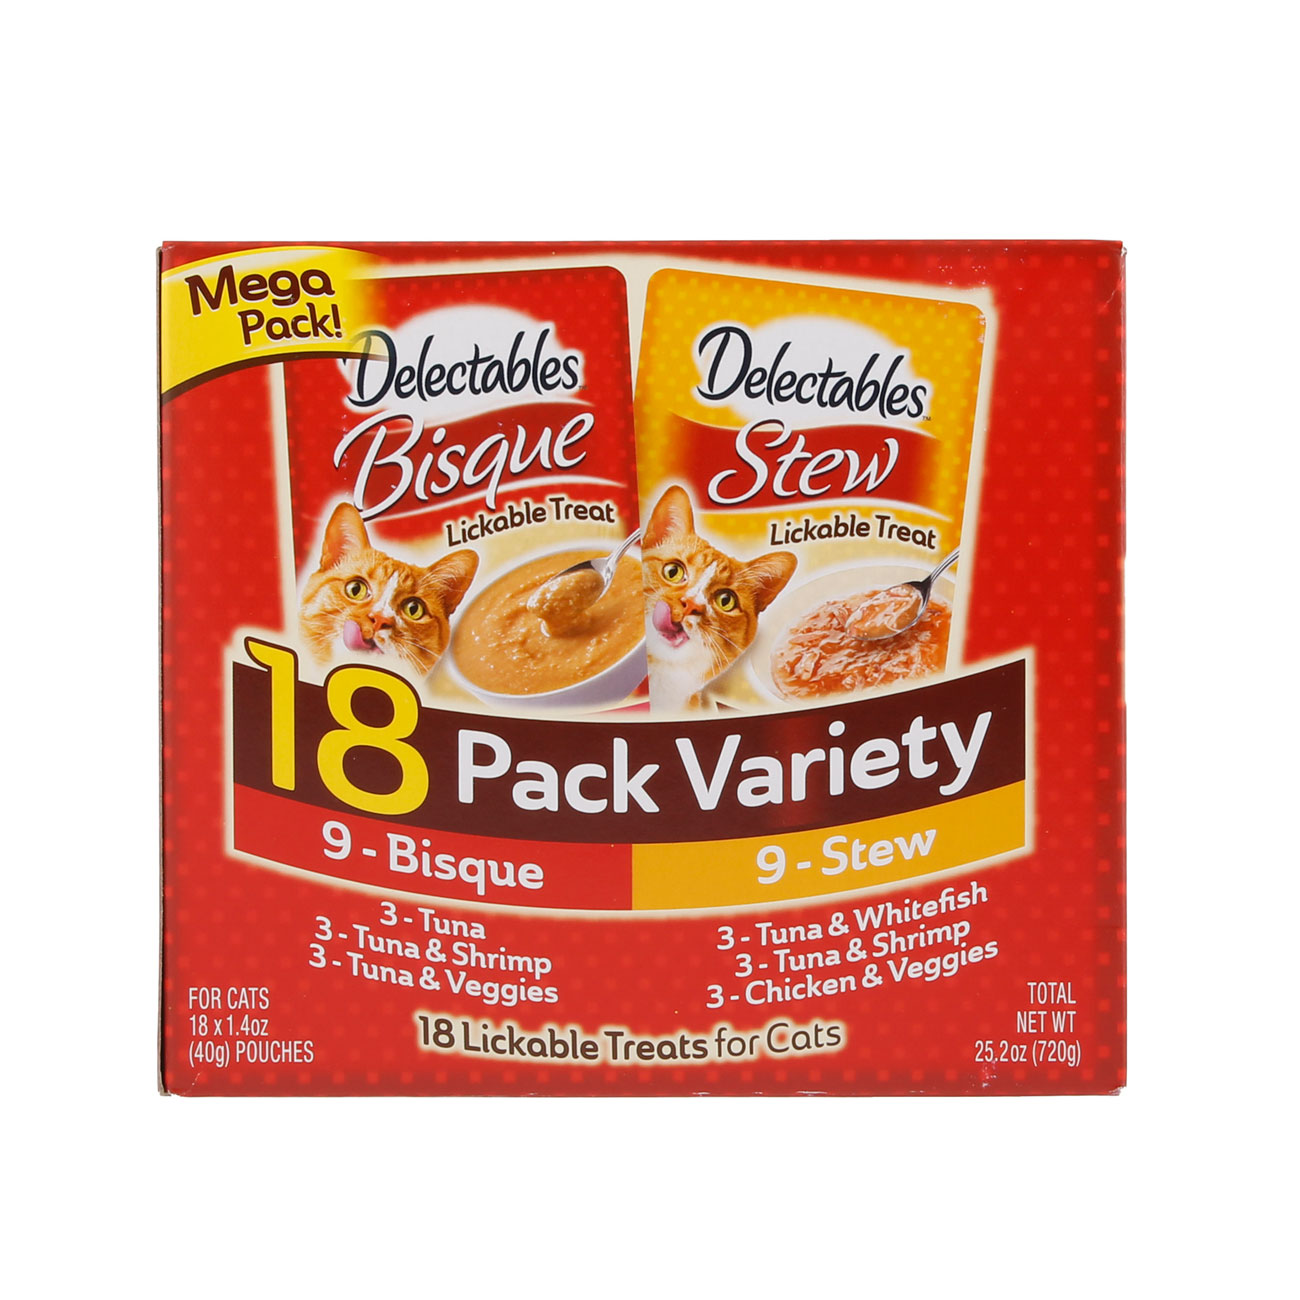 Hartz Delectables™ Lickable Treat 18 pack Variety pack. Front of package. The package has a picture of the Hartz Delectables lickable treat stew and bisque packages.